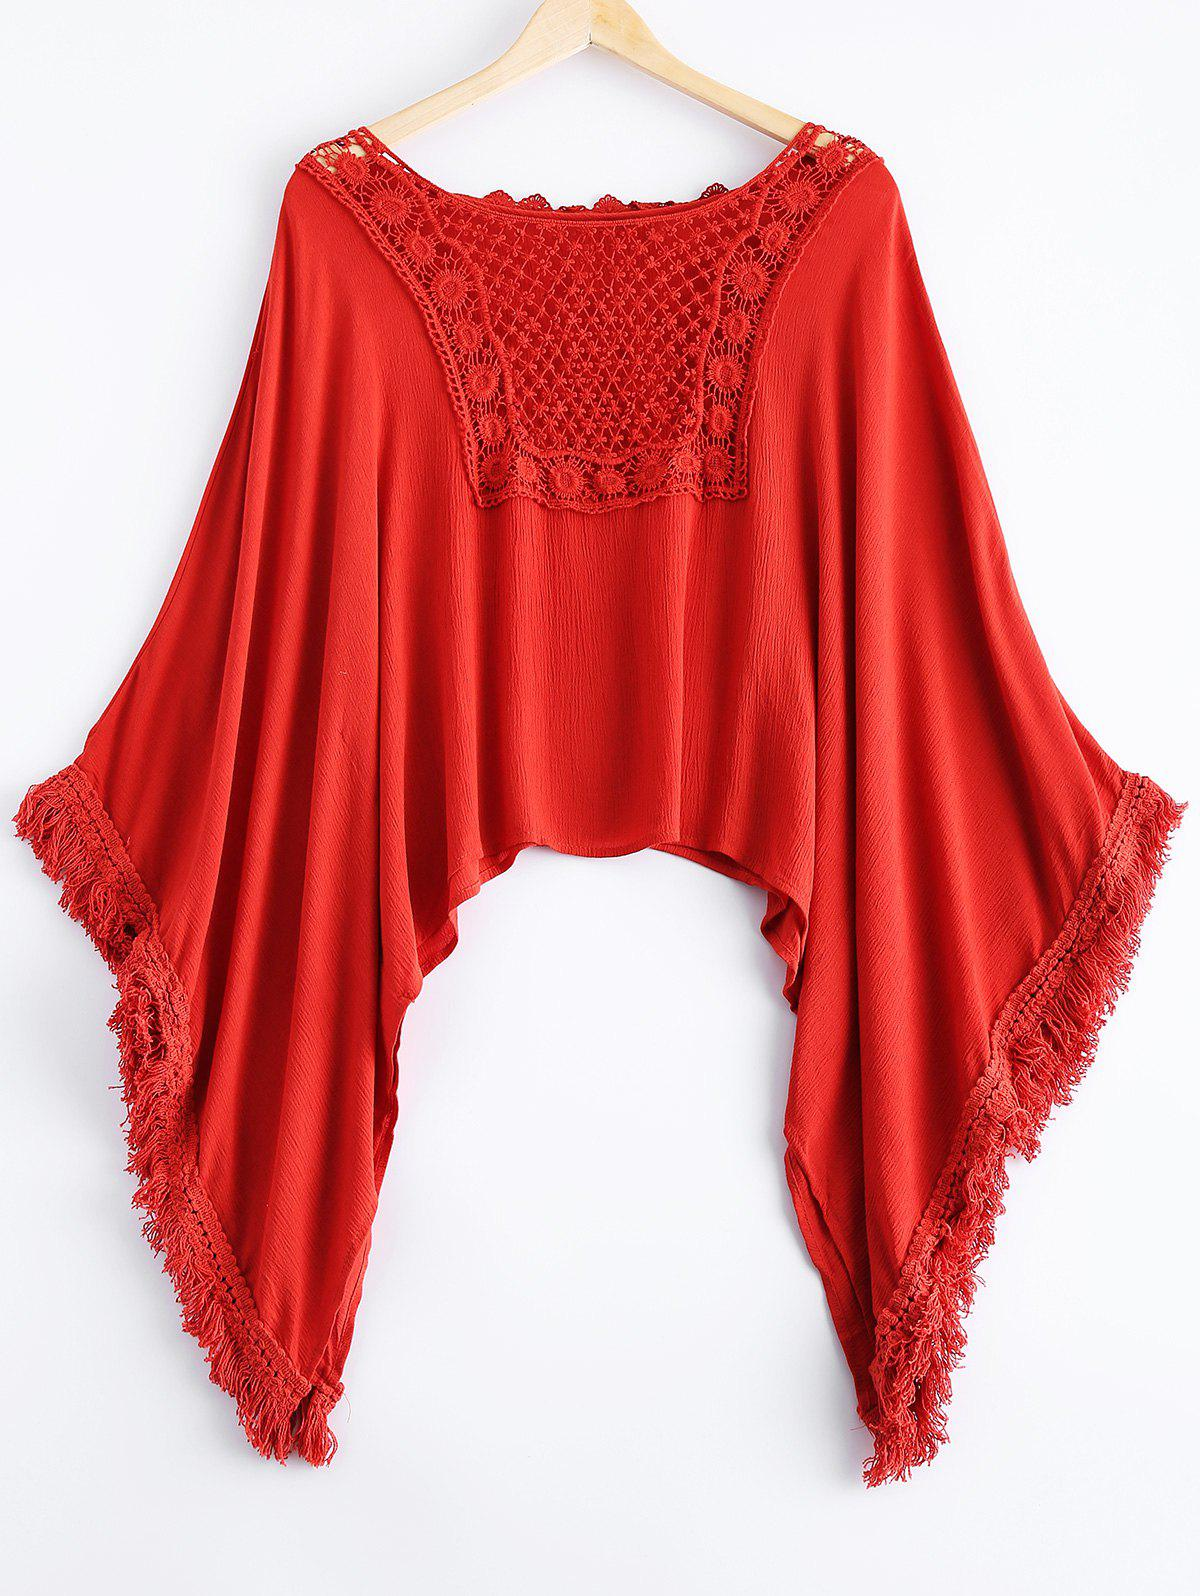 Ethnic Style Women's Scoop Neck Lace Dolman Sleeve Top - DARKSALMON ONE SIZE(FIT SIZE XS TO M)